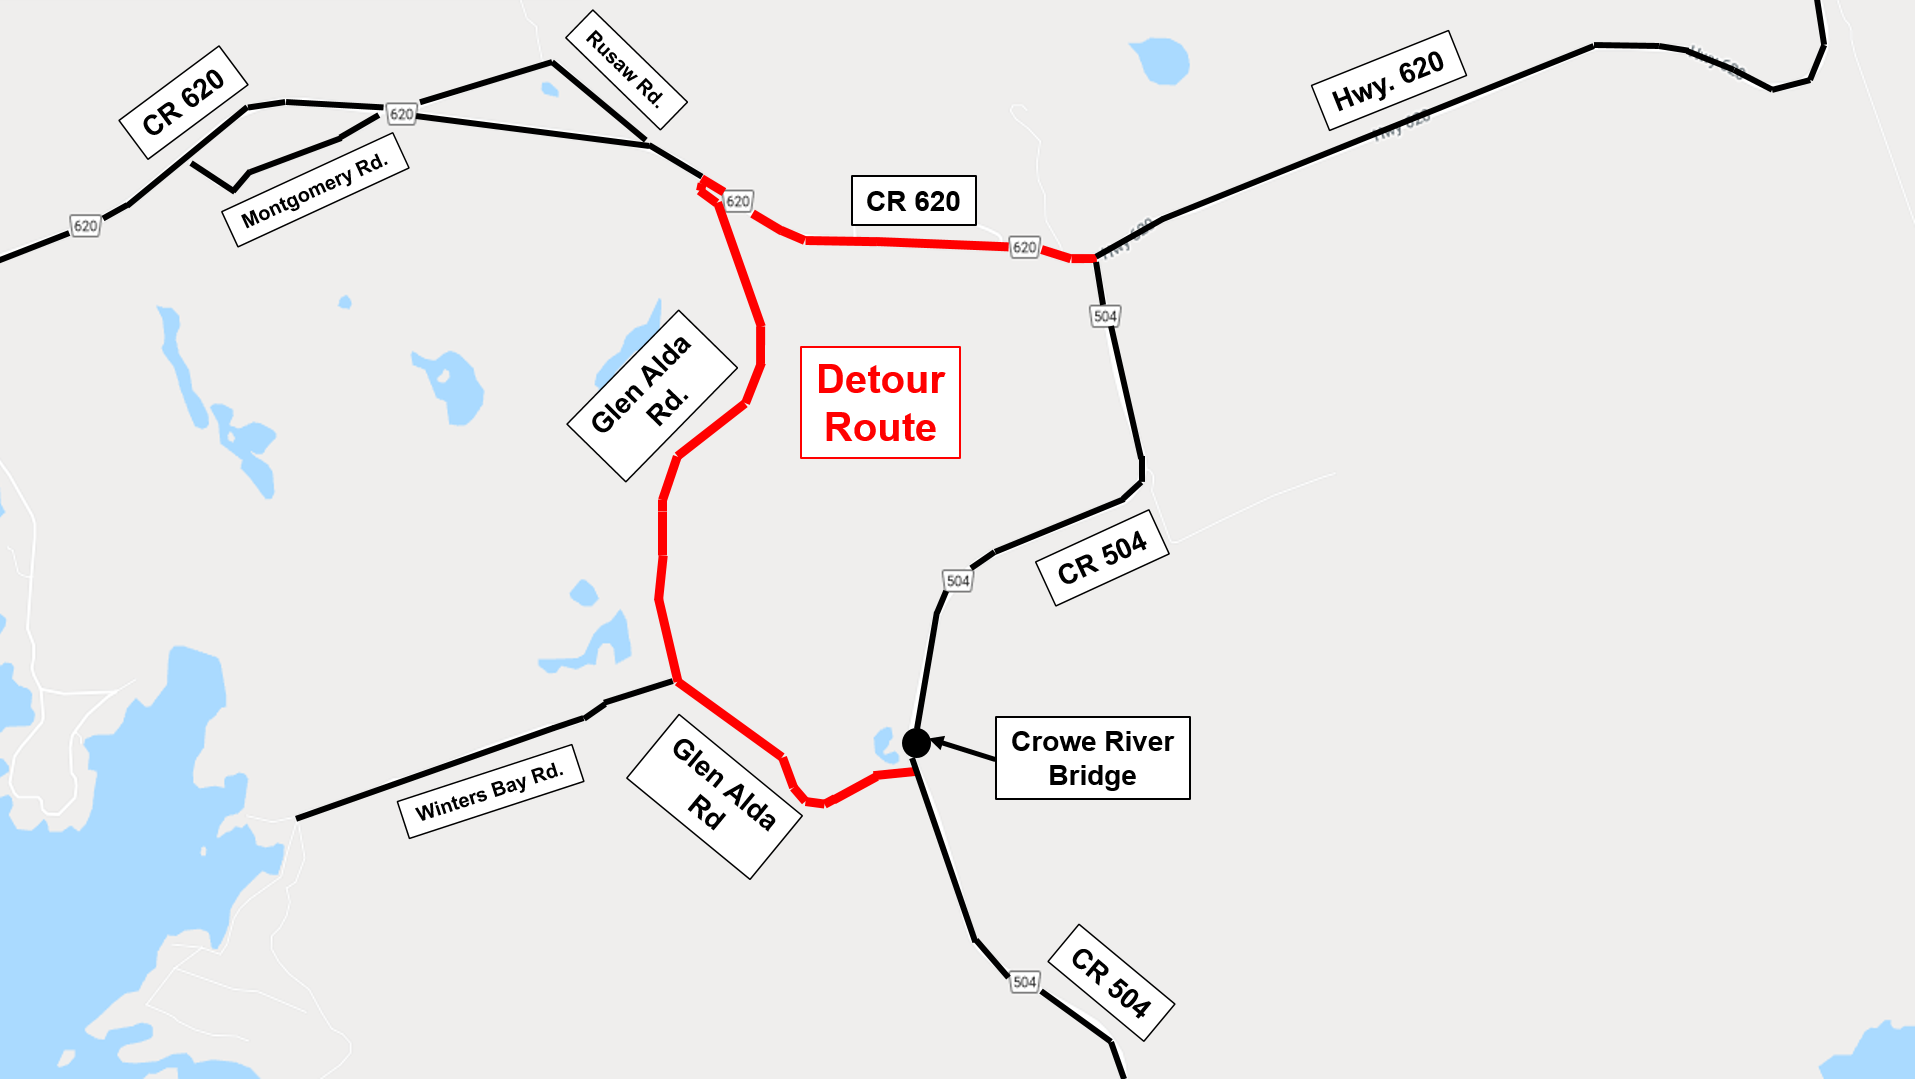 Crowe River Bridge Detour